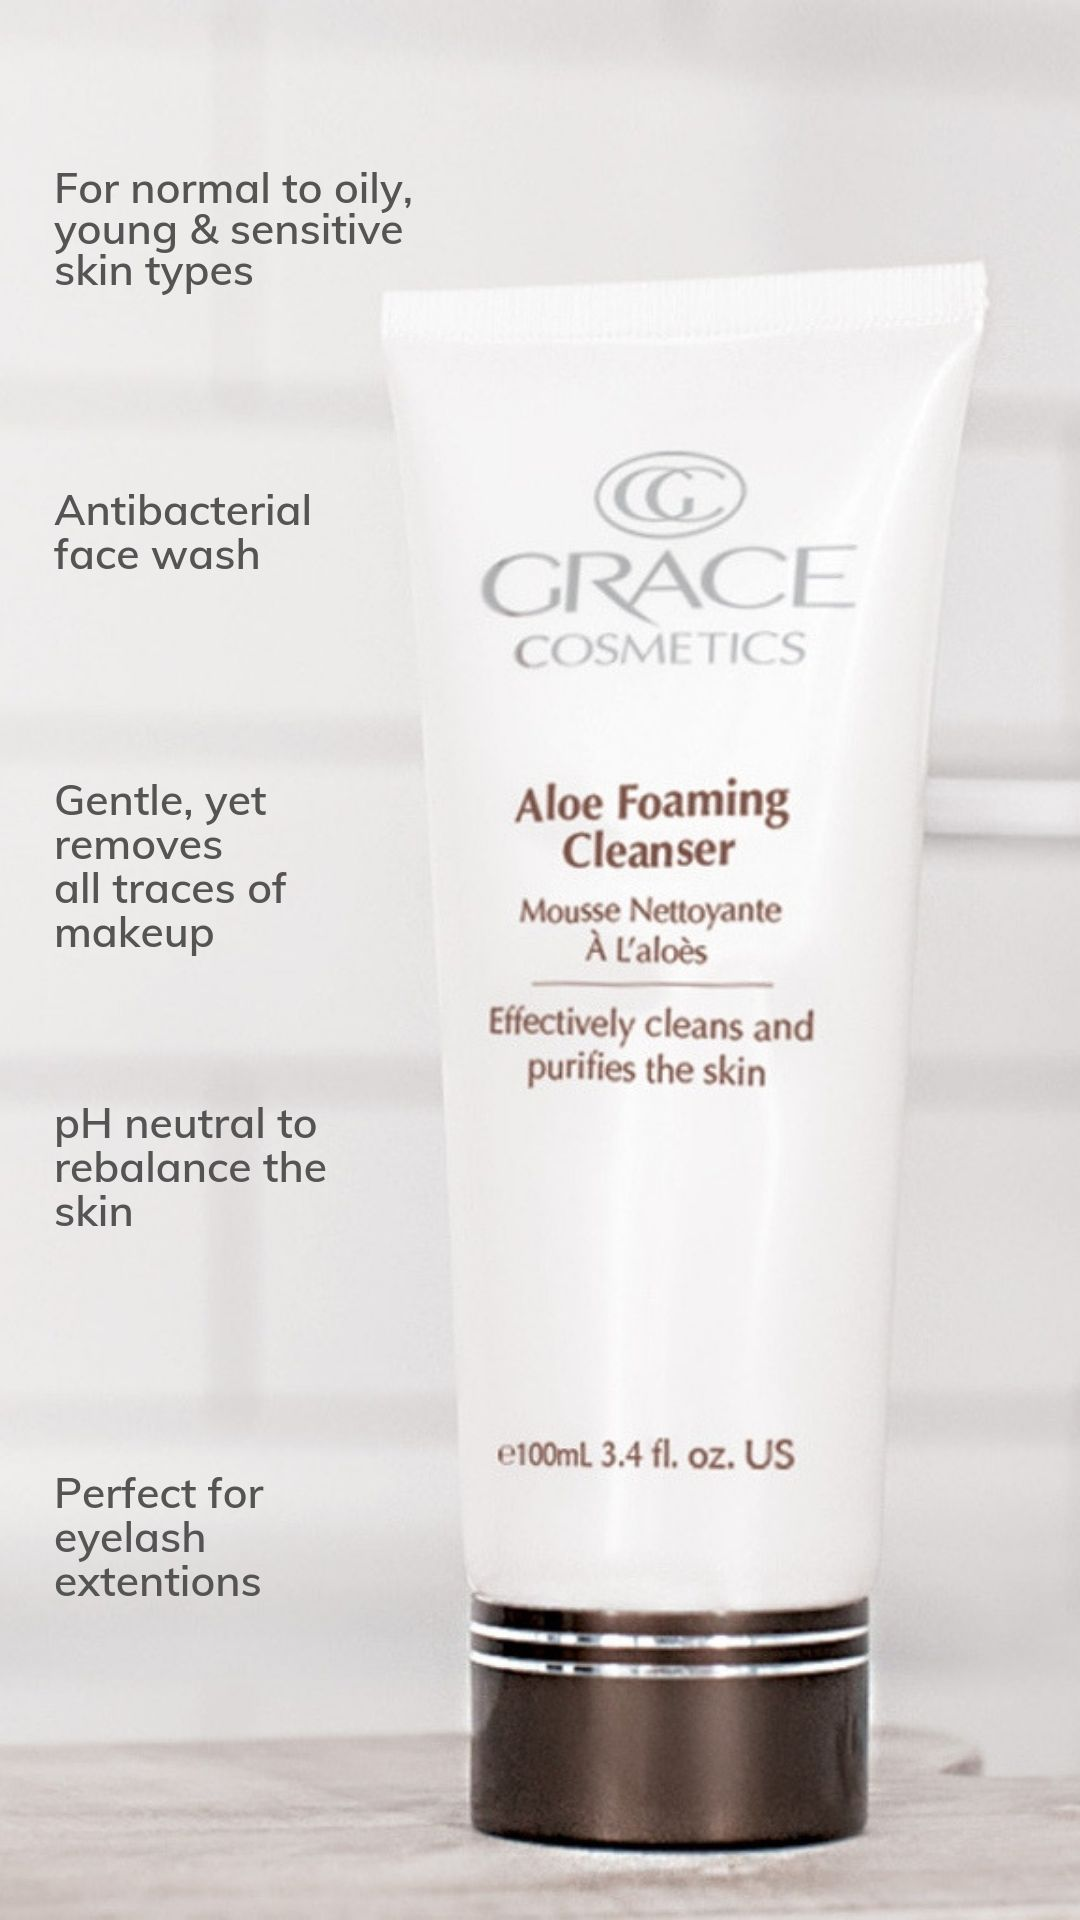 Pin by Grace Cosmetics on Cleanse Antibacterial face